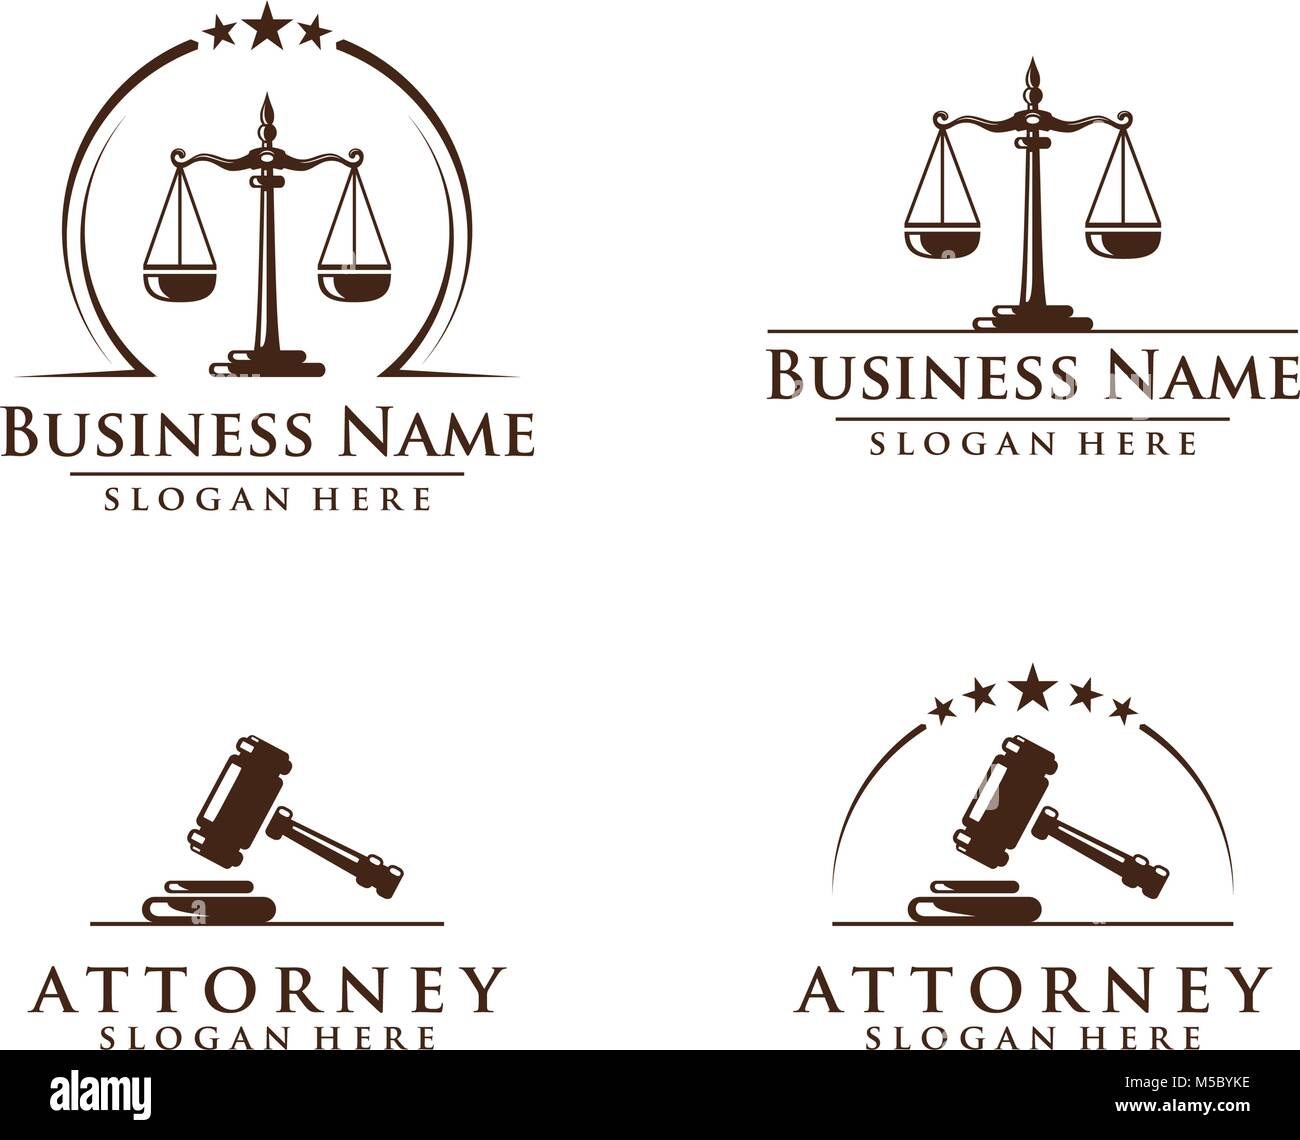 Law and Attorney logo, elegant Law and Attorney Firm vector